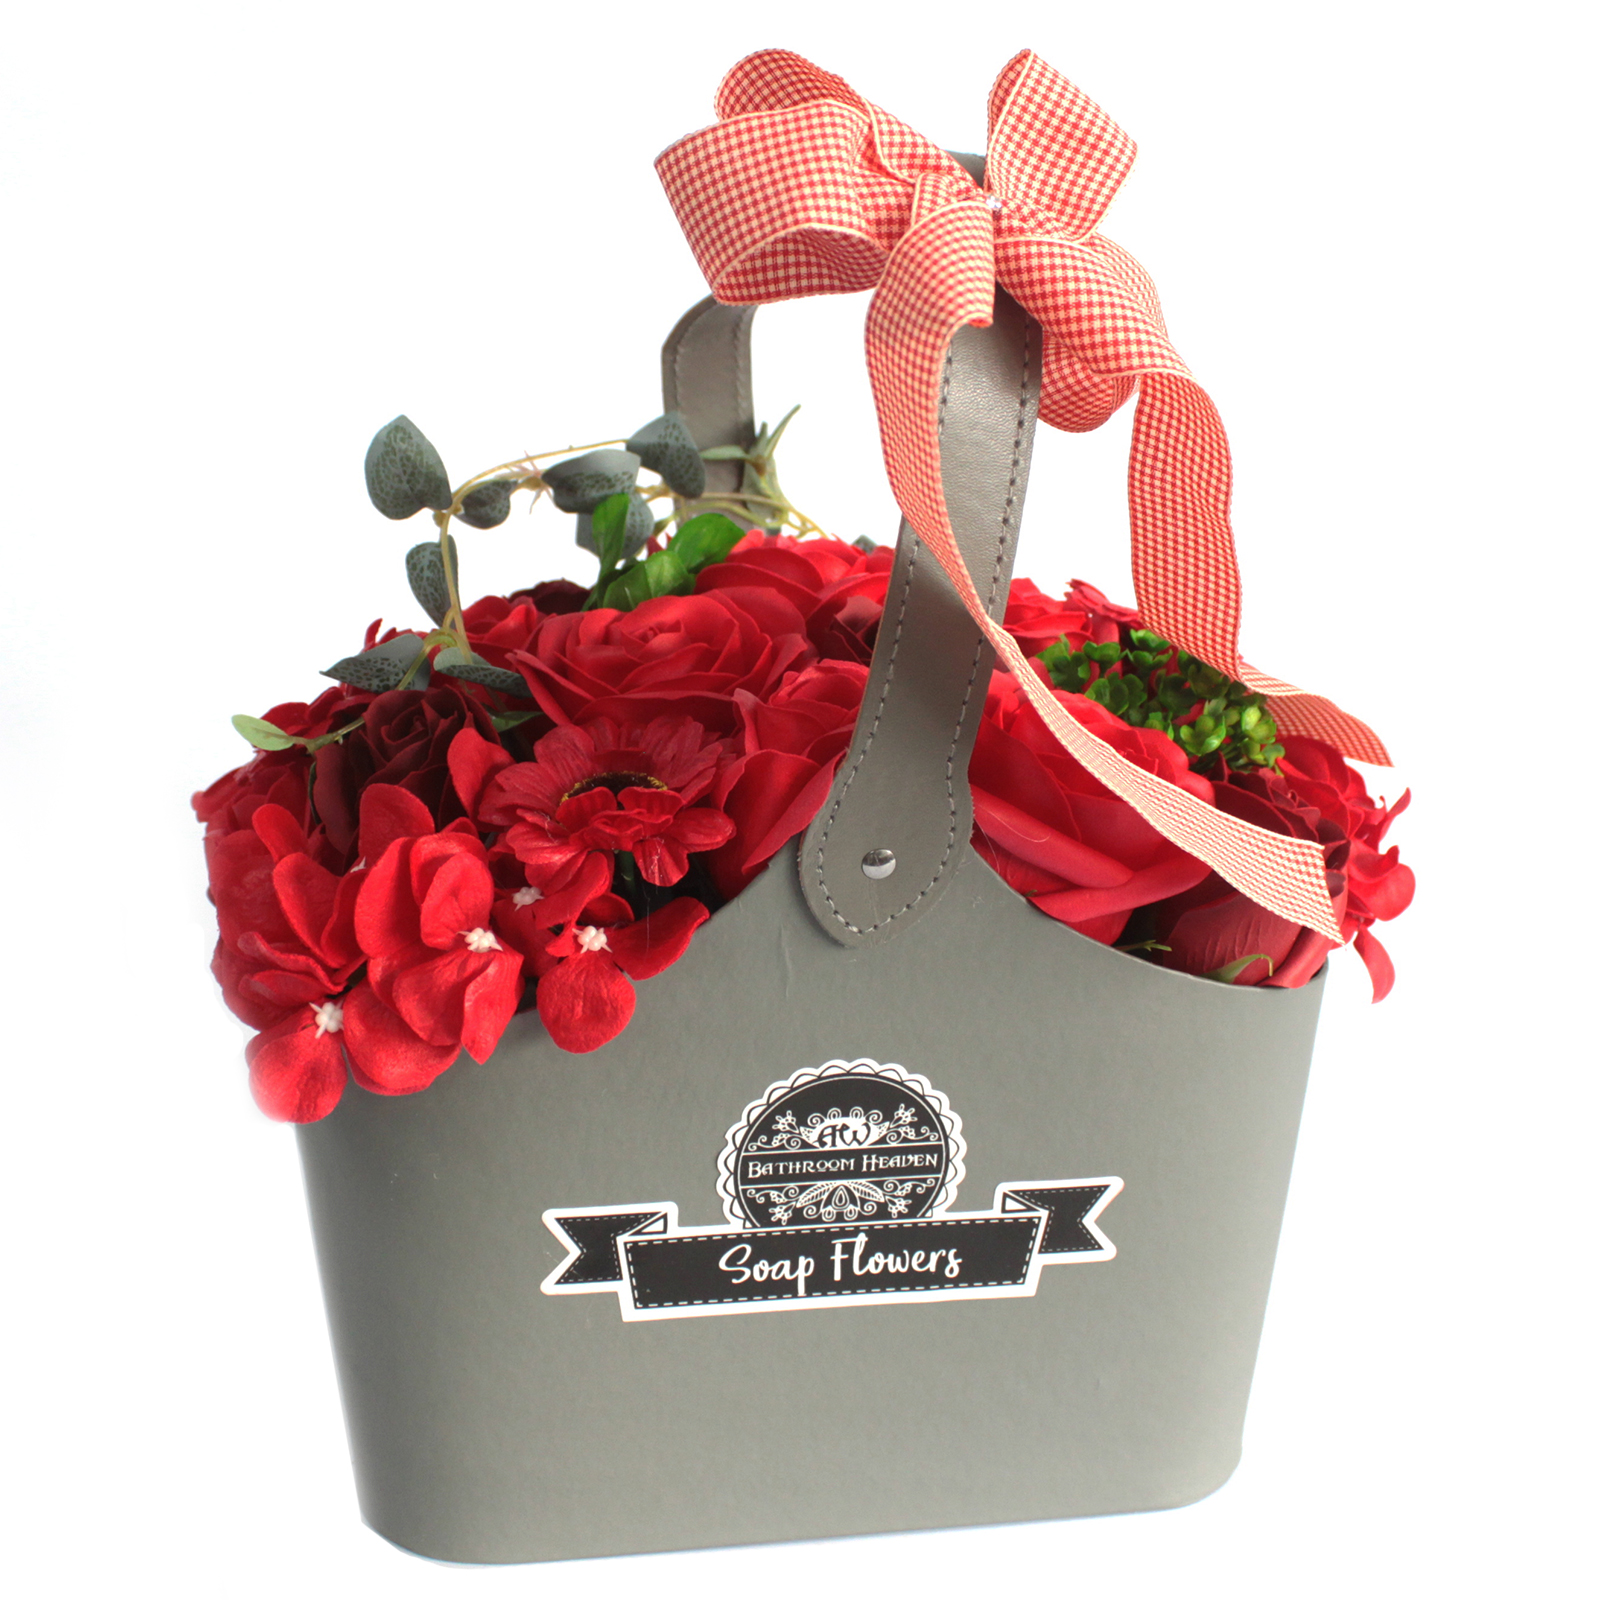 Basket Soap Flower Bouquet - Red